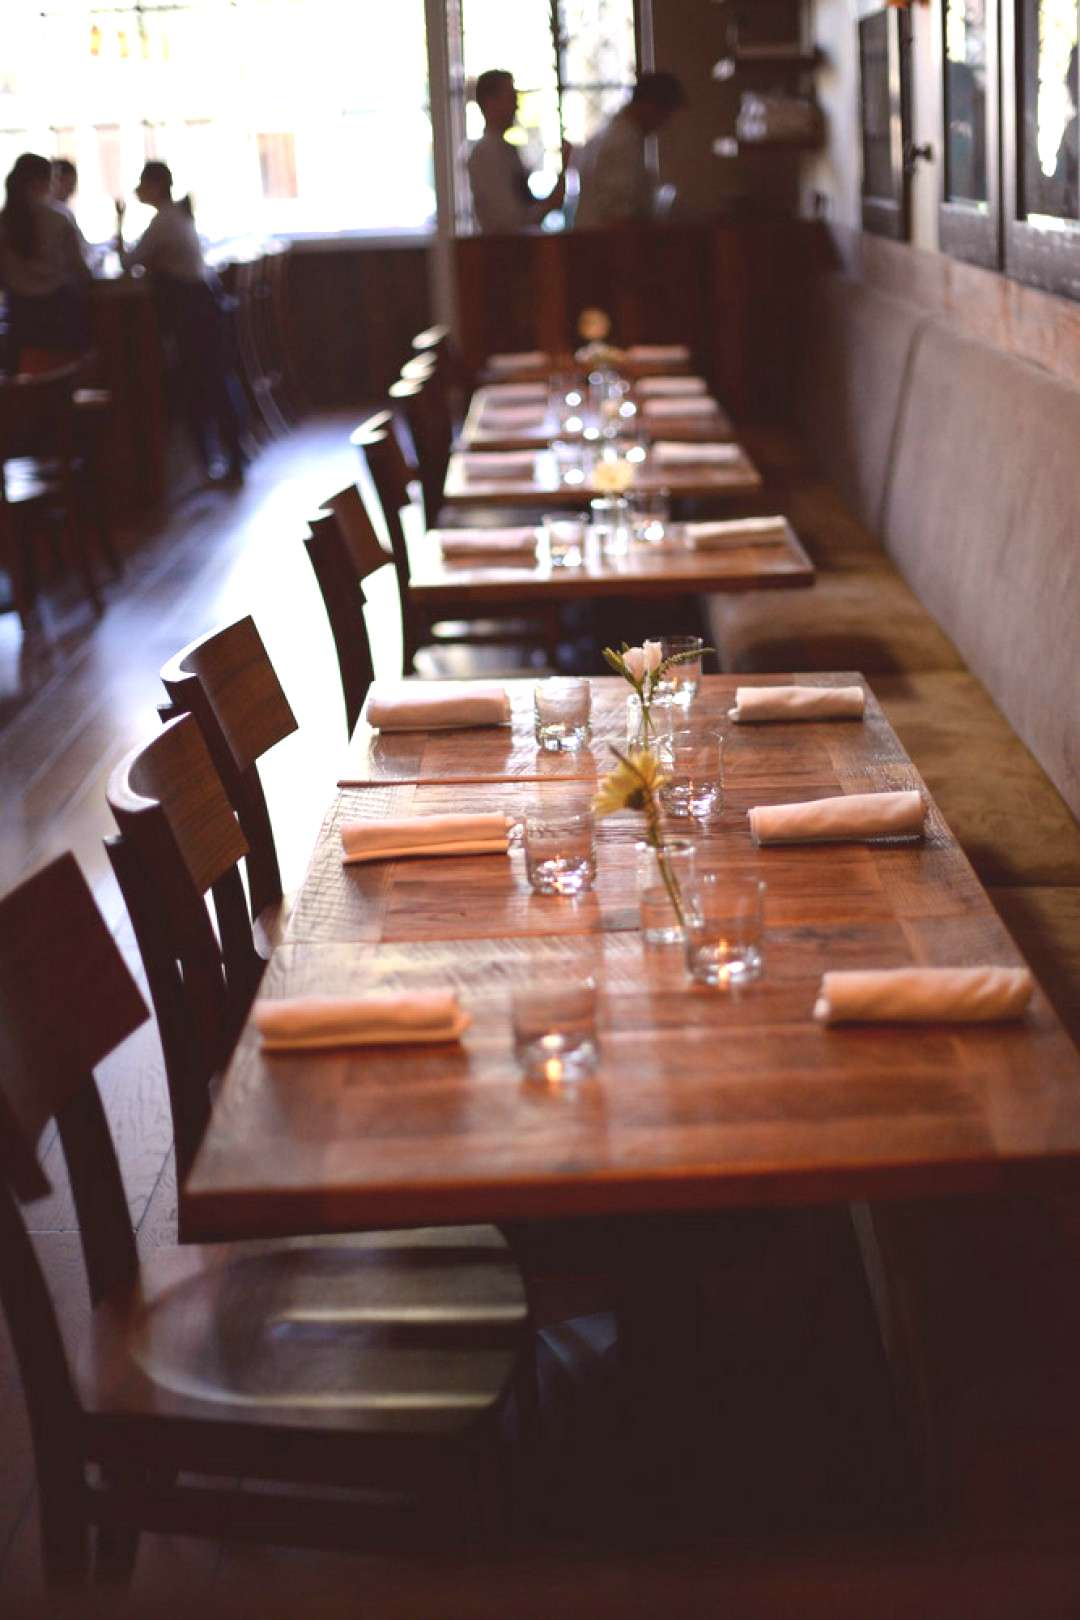 19 Restaurants with the Best Rustic Decor ...k of nautical interior designing is...#decor